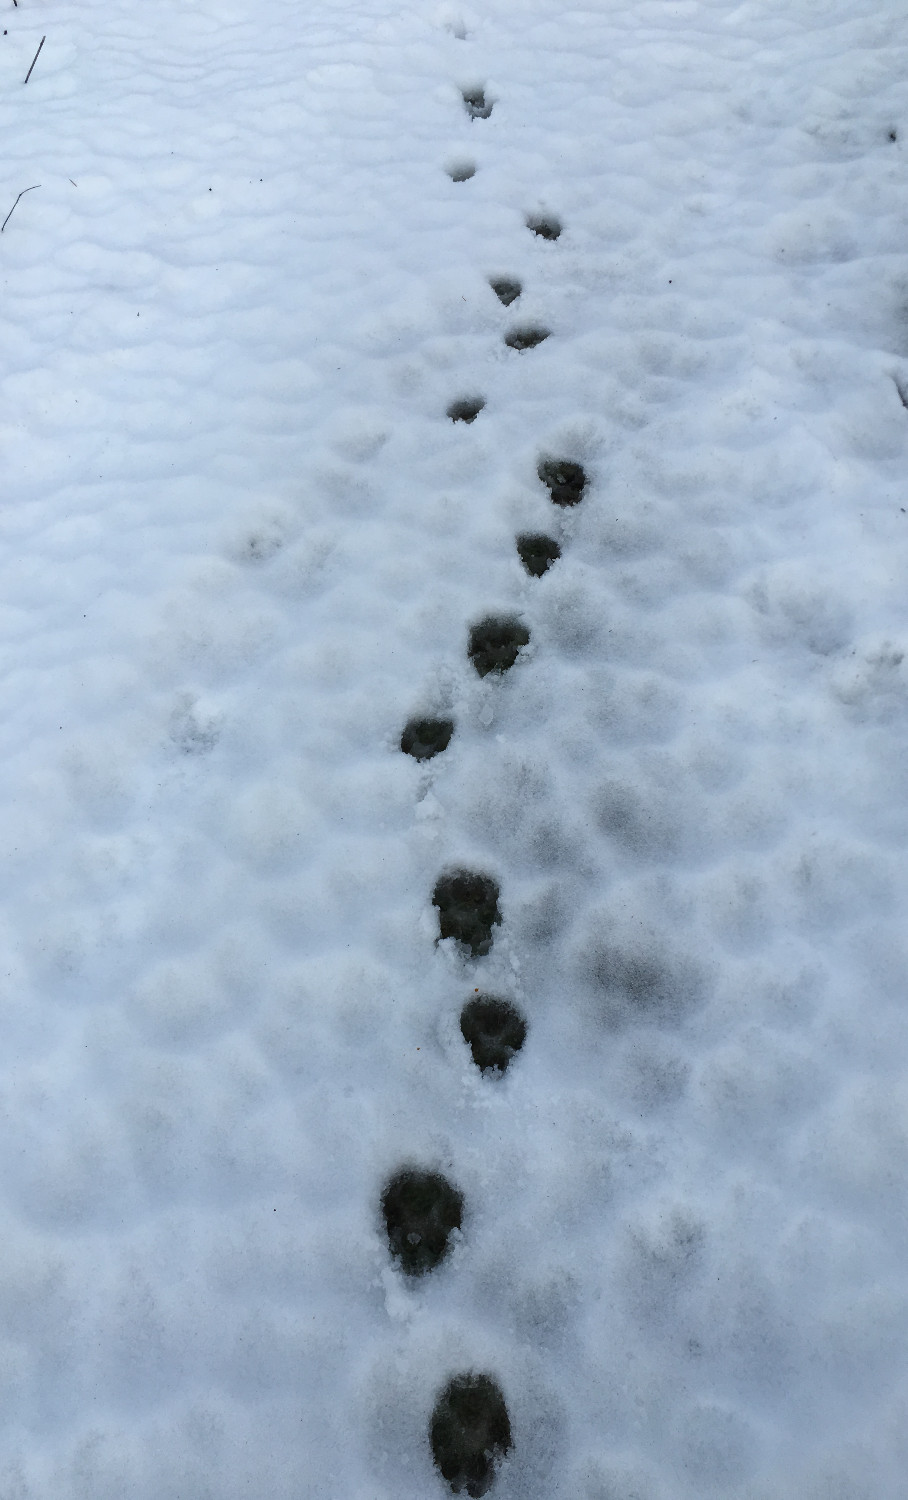 Animal tracks in the winter